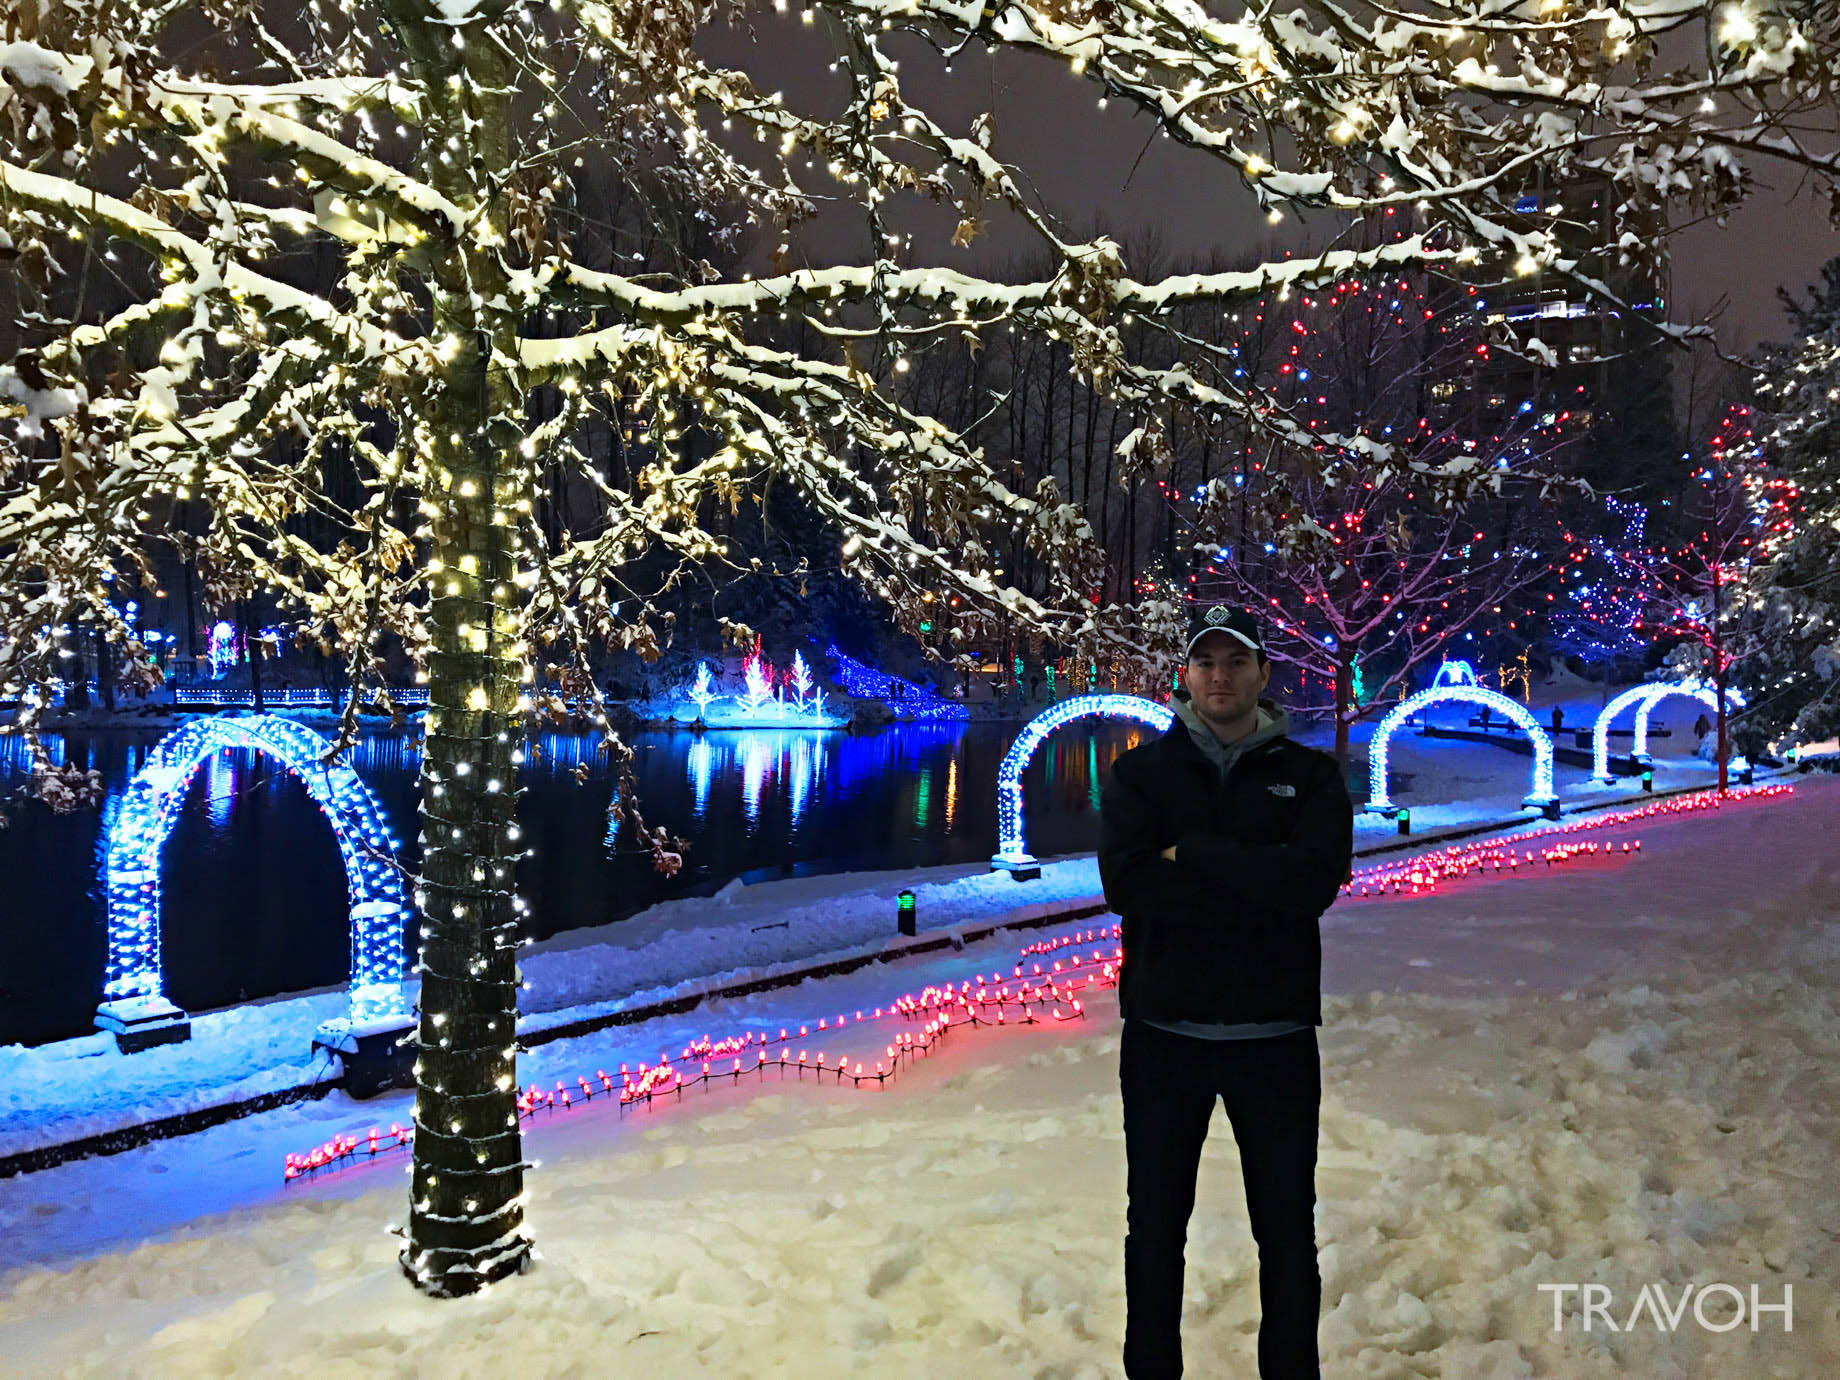 Marcus Anthony - Lafarge Winter Lights Display - Arbour Walk - Coquitlam, BC, Canada